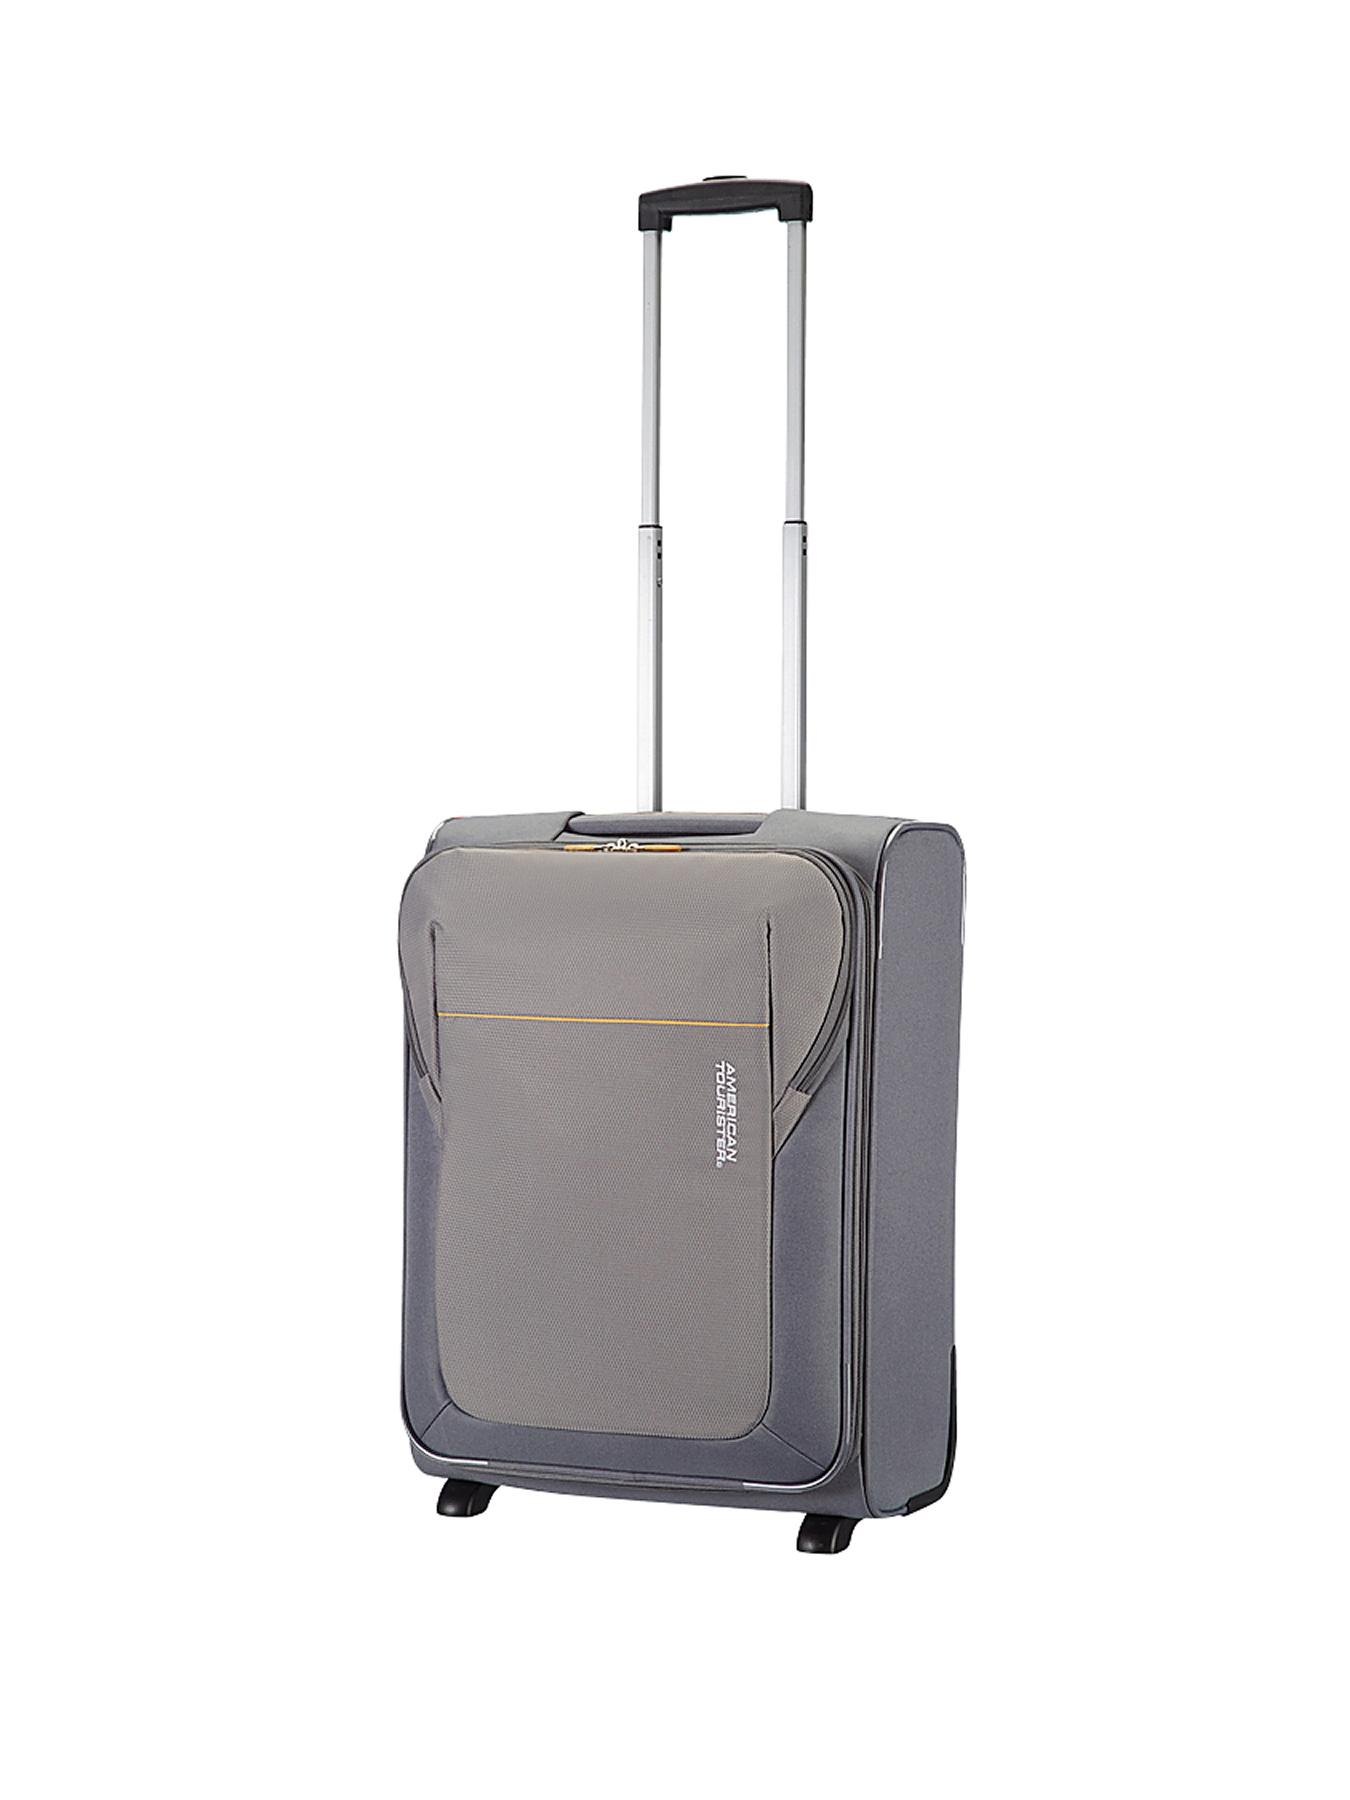 AMERICAN TOURISTER San Francisco Upright Spinner Cabin Case - Grey